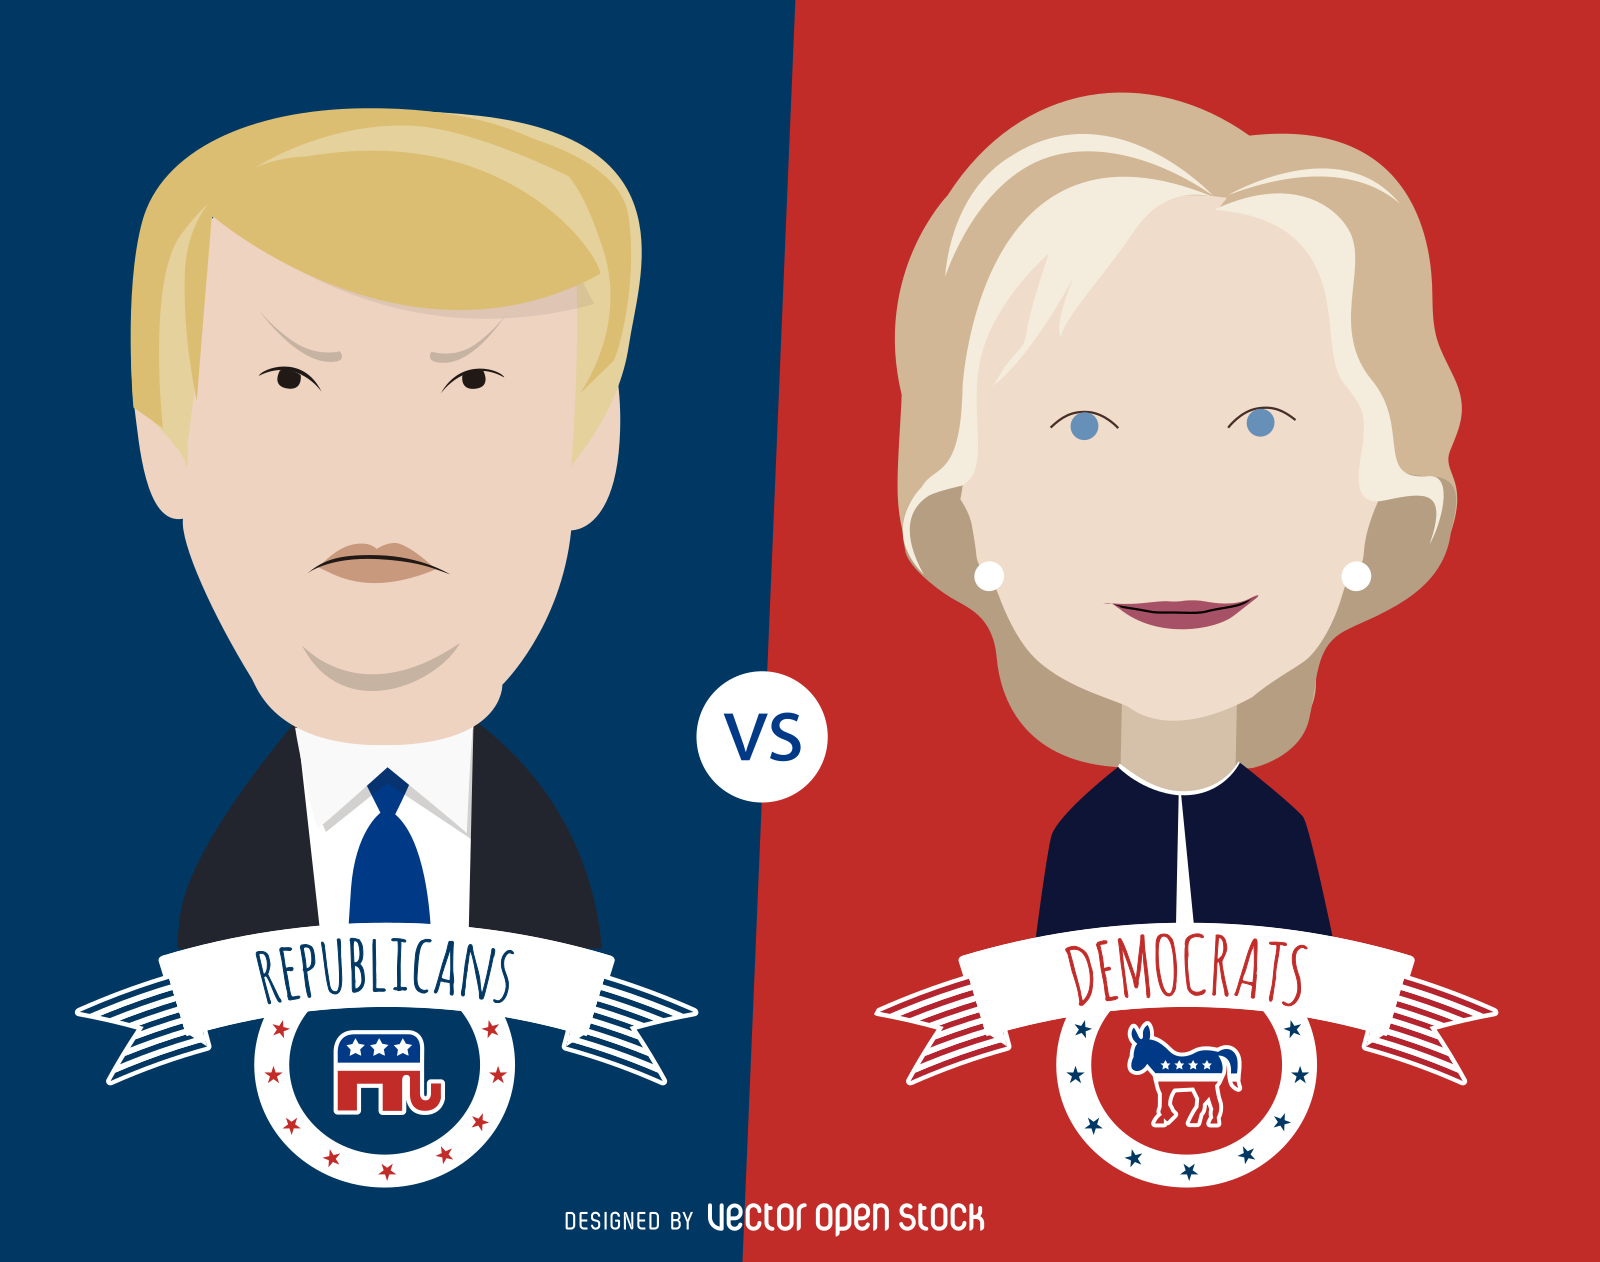 USAVector_022-01_Clinton_and_Trump_cartoon_illustration.svg.png